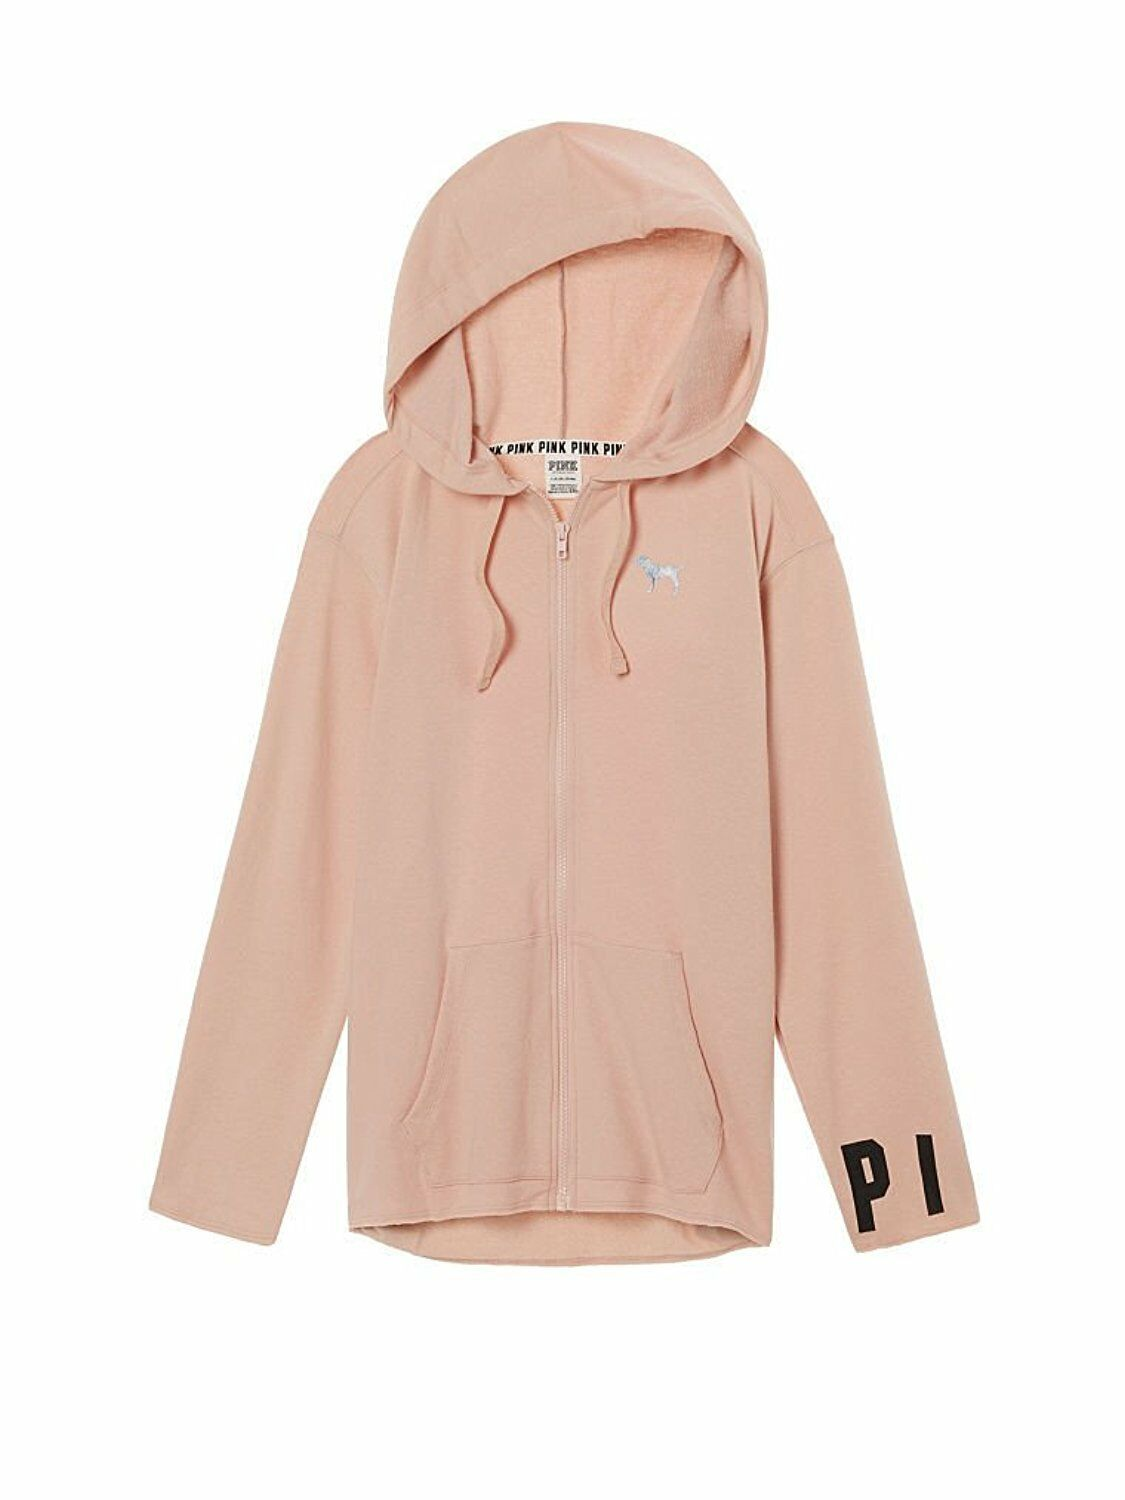 VICTORIA'S SECRET Pink NEW SIDE SLIT FULL-ZIP Hoodie color Ballet Pink Small